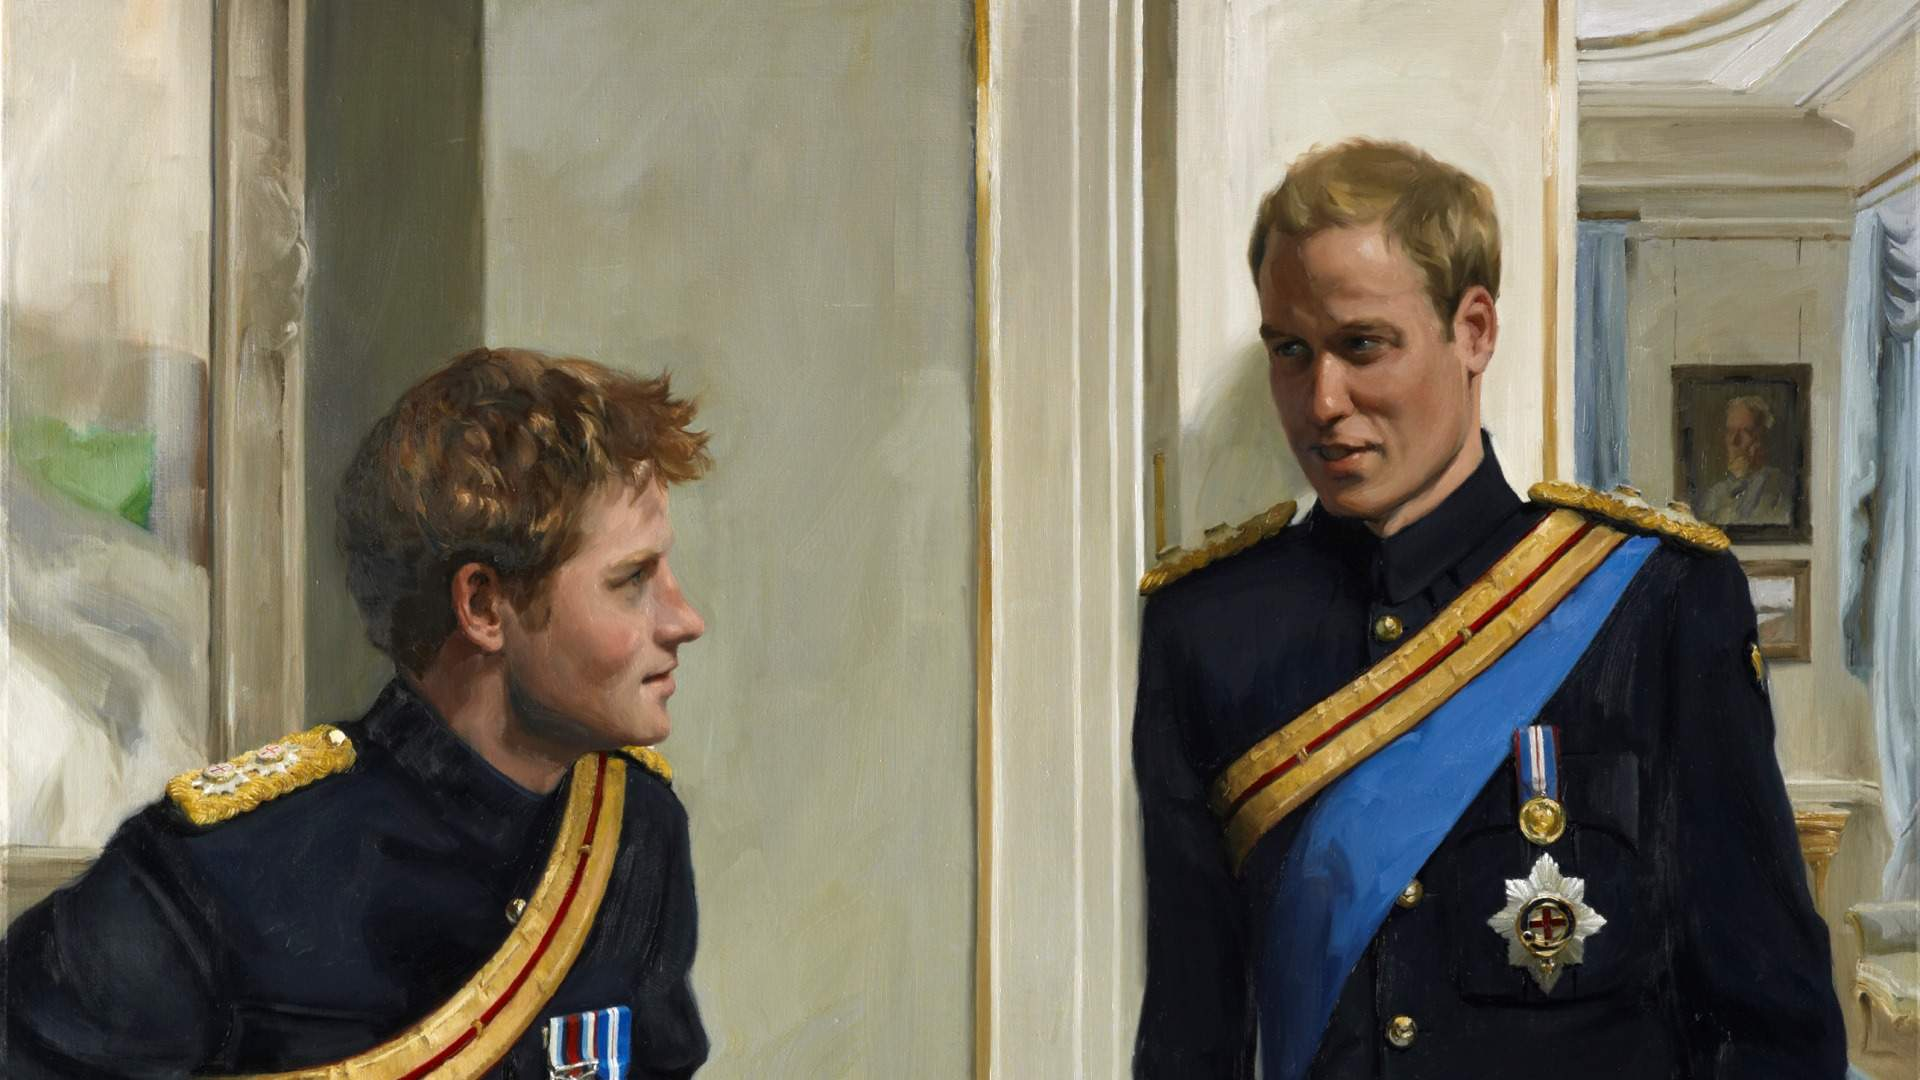 Prince William, (later Duke of Cambridge), Prince Harry (later Duke of Sussex) By Nicola Jane ('Nicky') Philipps, 2009 © National Portrait Gallery, London, Cropped